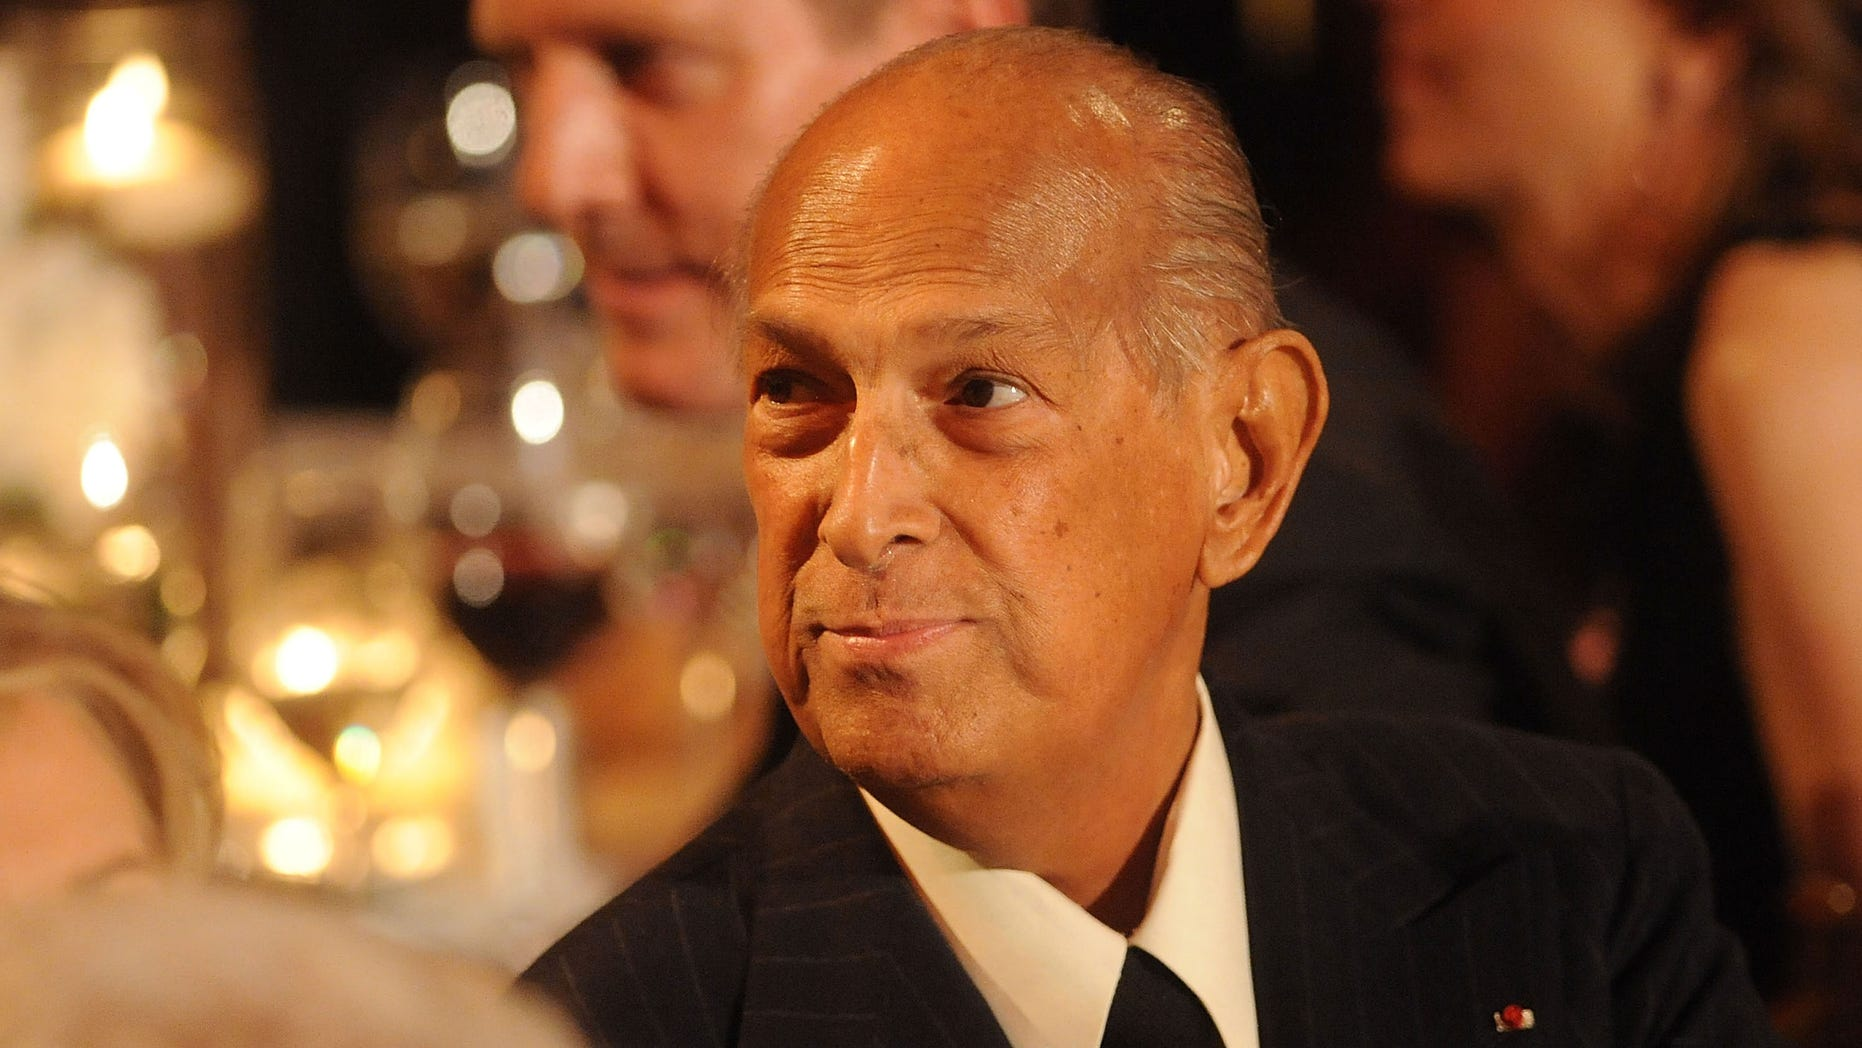 NEW YORK, NY - APRIL 24:  Designer Oscar de la Renta attends the 2014 Carnegie Hall Medal Of Excellence Gala Honoring Oscar De La Renta at The Plaza Hotel on April 24, 2014 in New York City.  (Photo by Brad Barket/Getty Images)